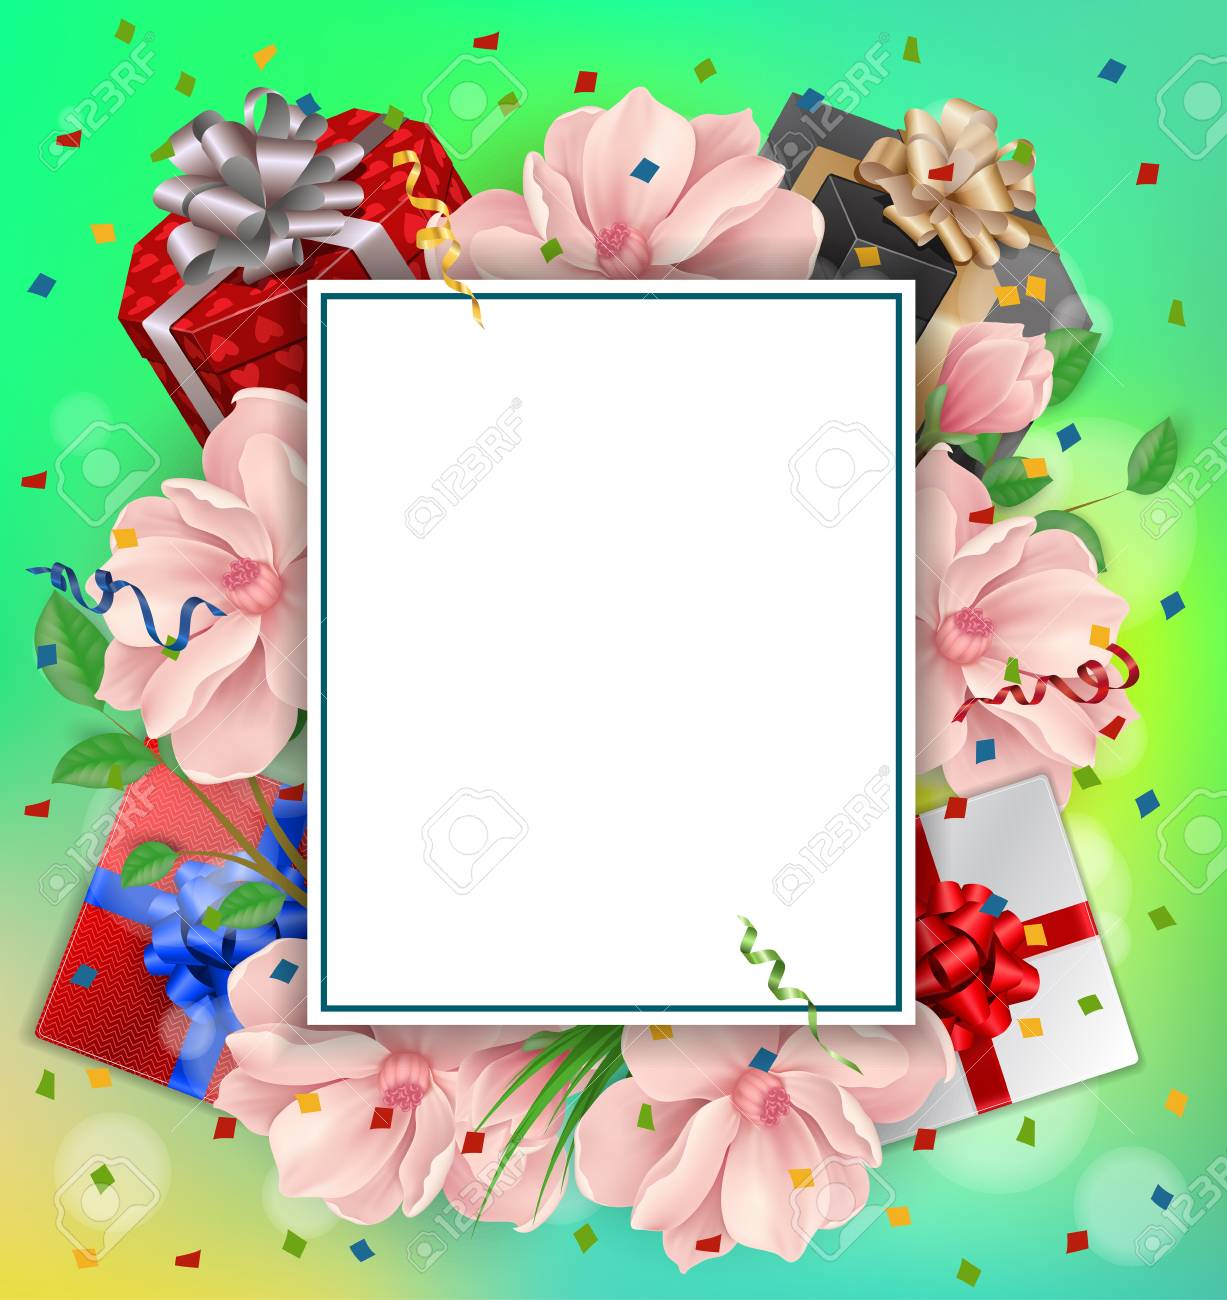 blank greeting card with paper sheet gifts and flowers for